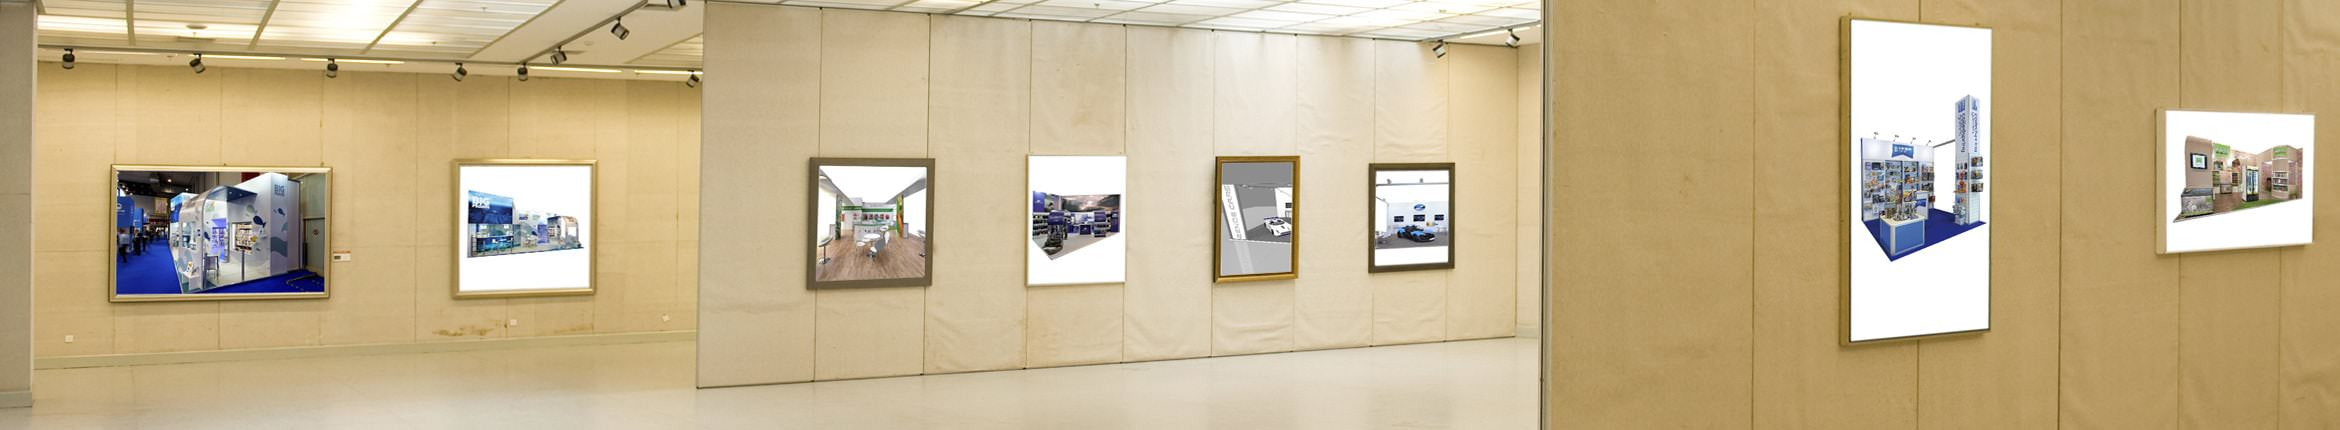 A gallery of exhibition works